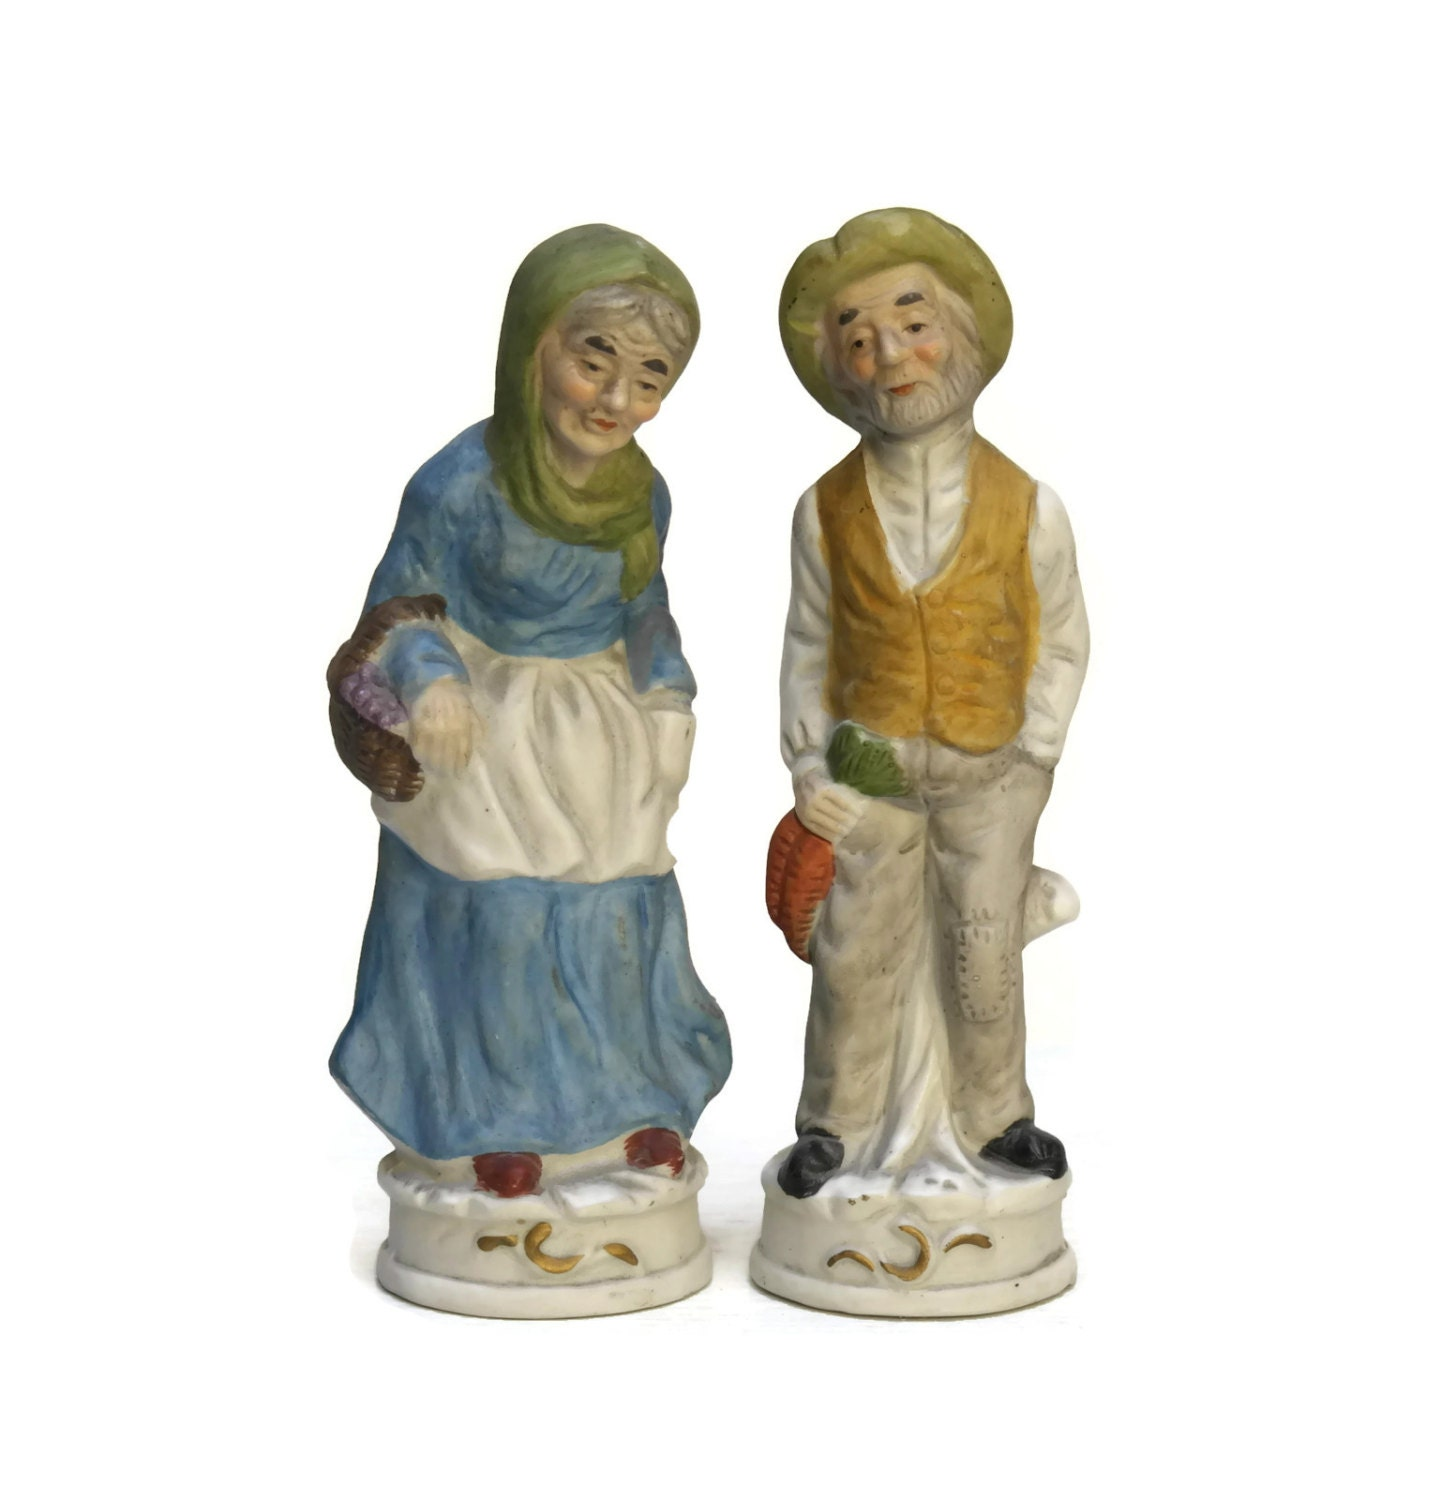 French Bisque Figurines Old Couple Porcelain Figurines